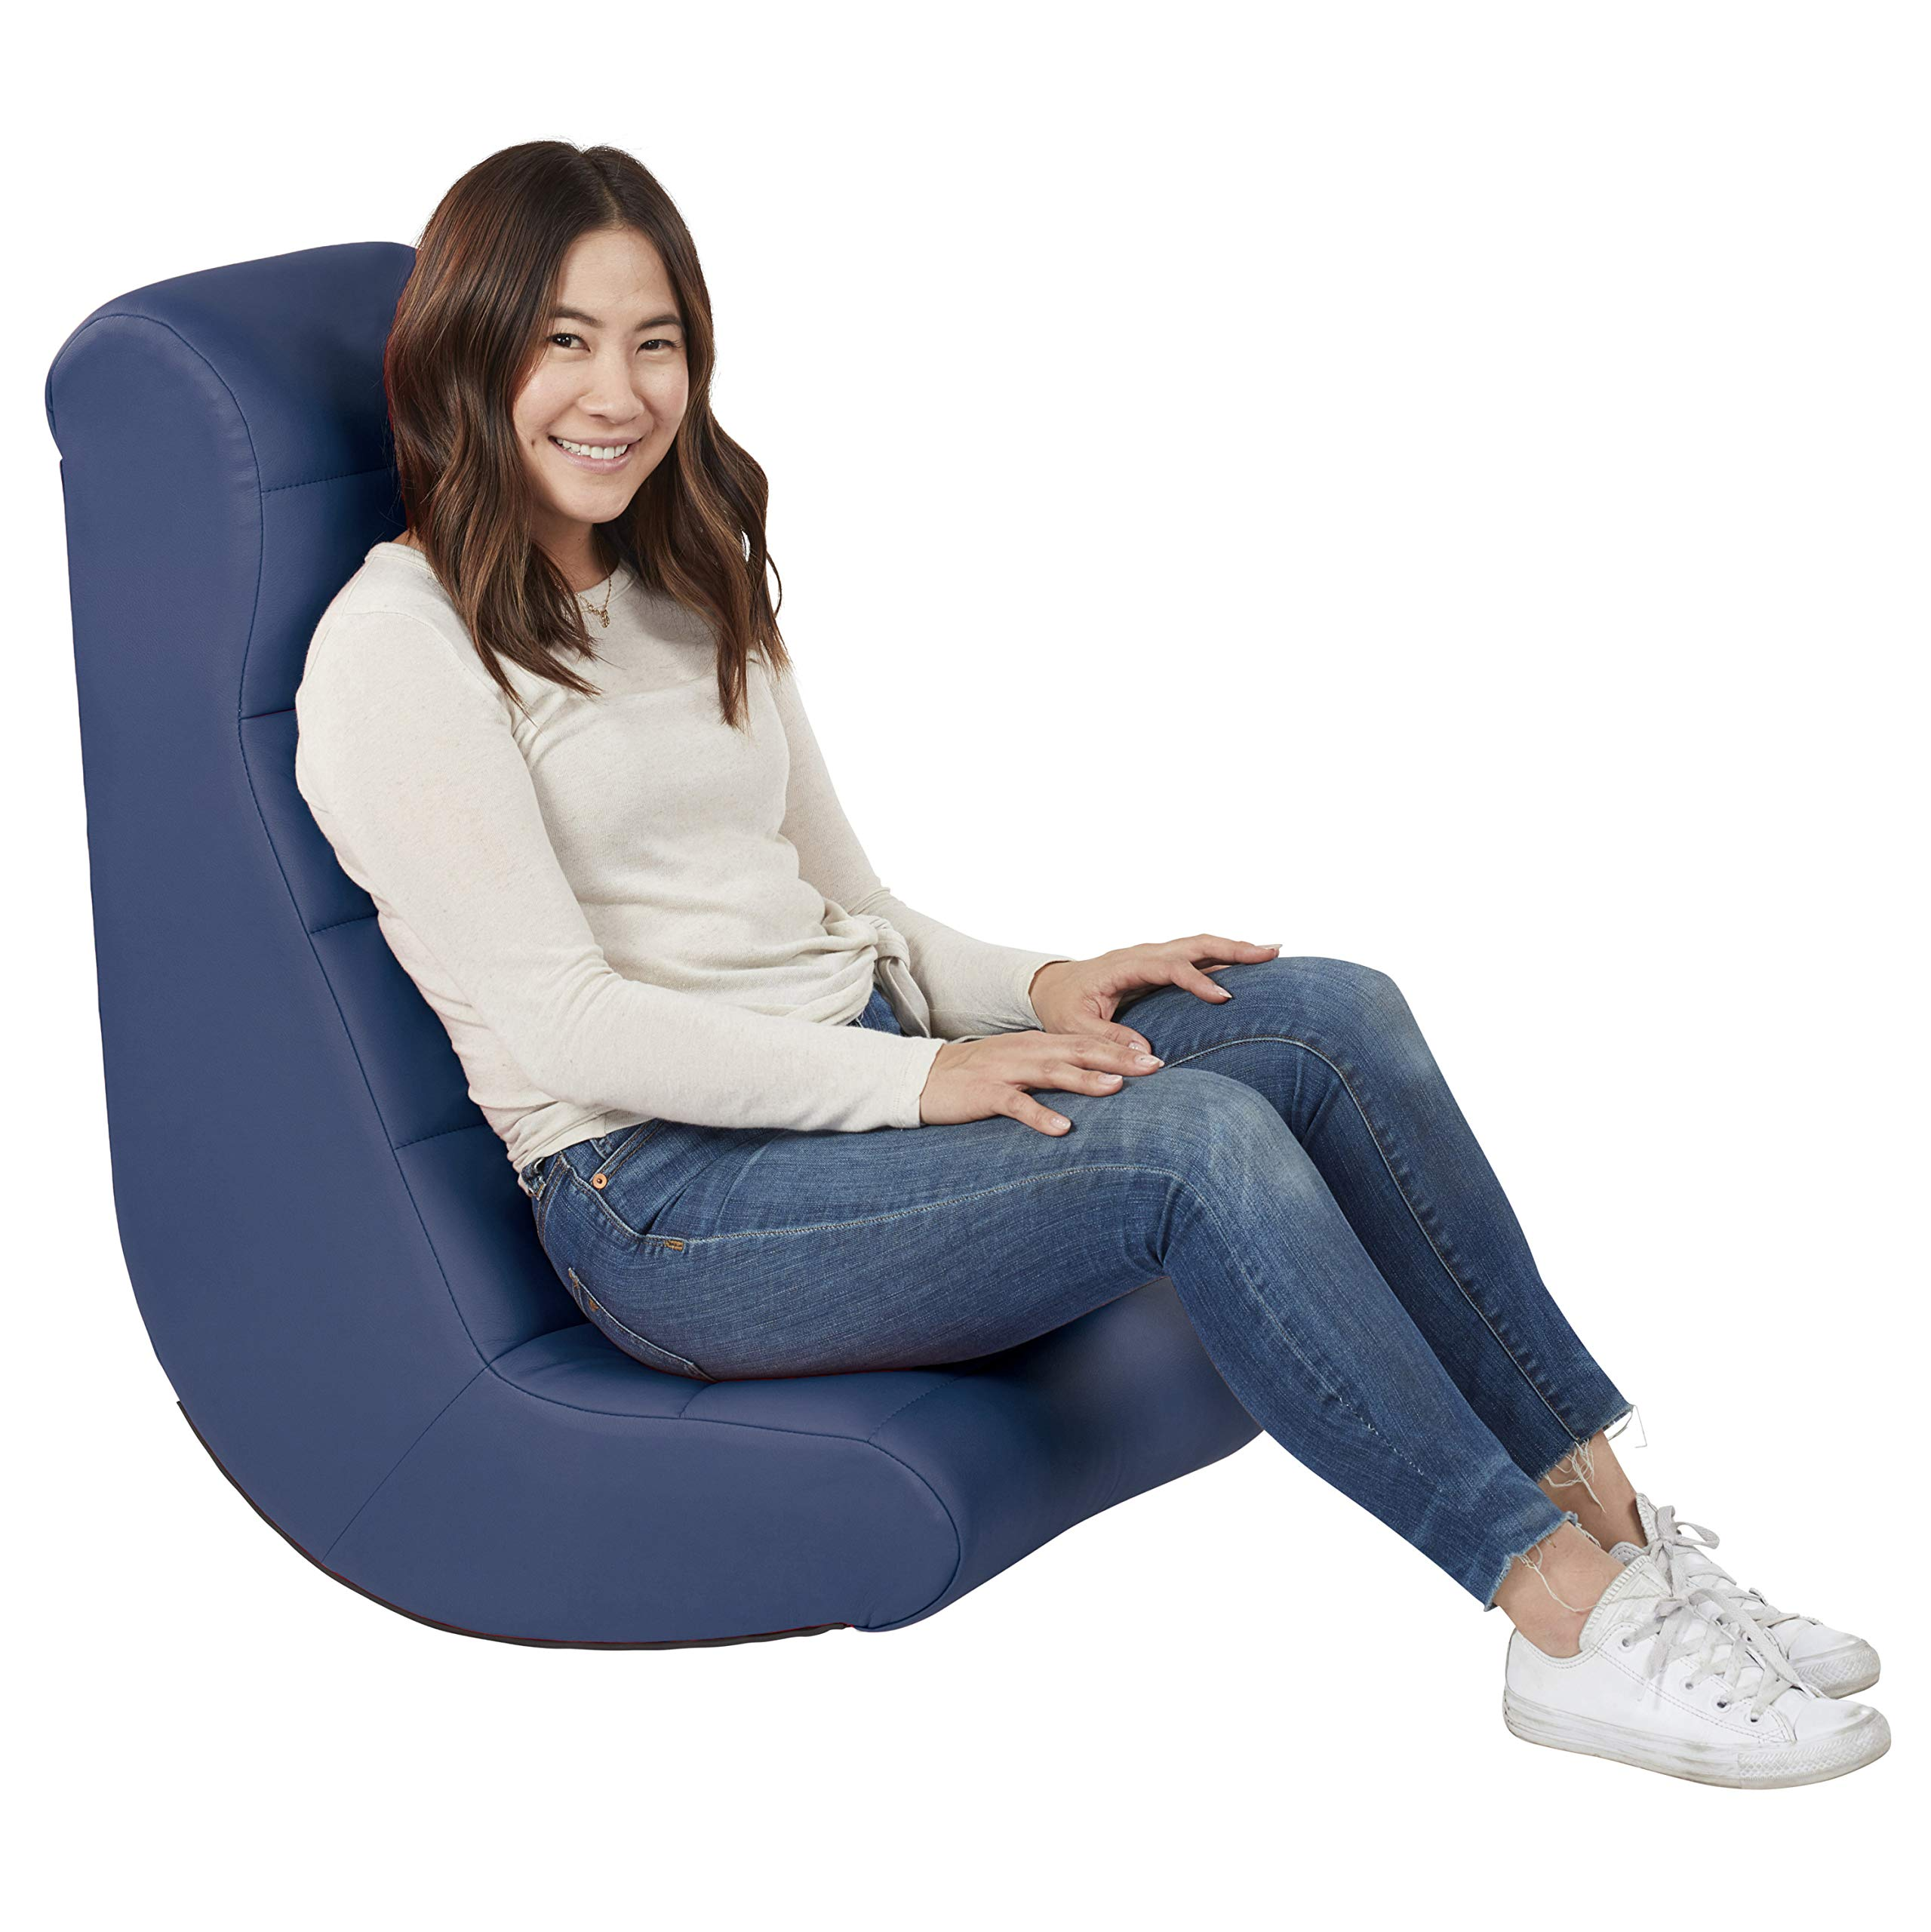 Soft Ergonomic Horizontal Soft Video Rocker - Great for Reading, Gaming, Meditating, or TV for Kids Teens and Adults - Navy by Factory Direct Partners